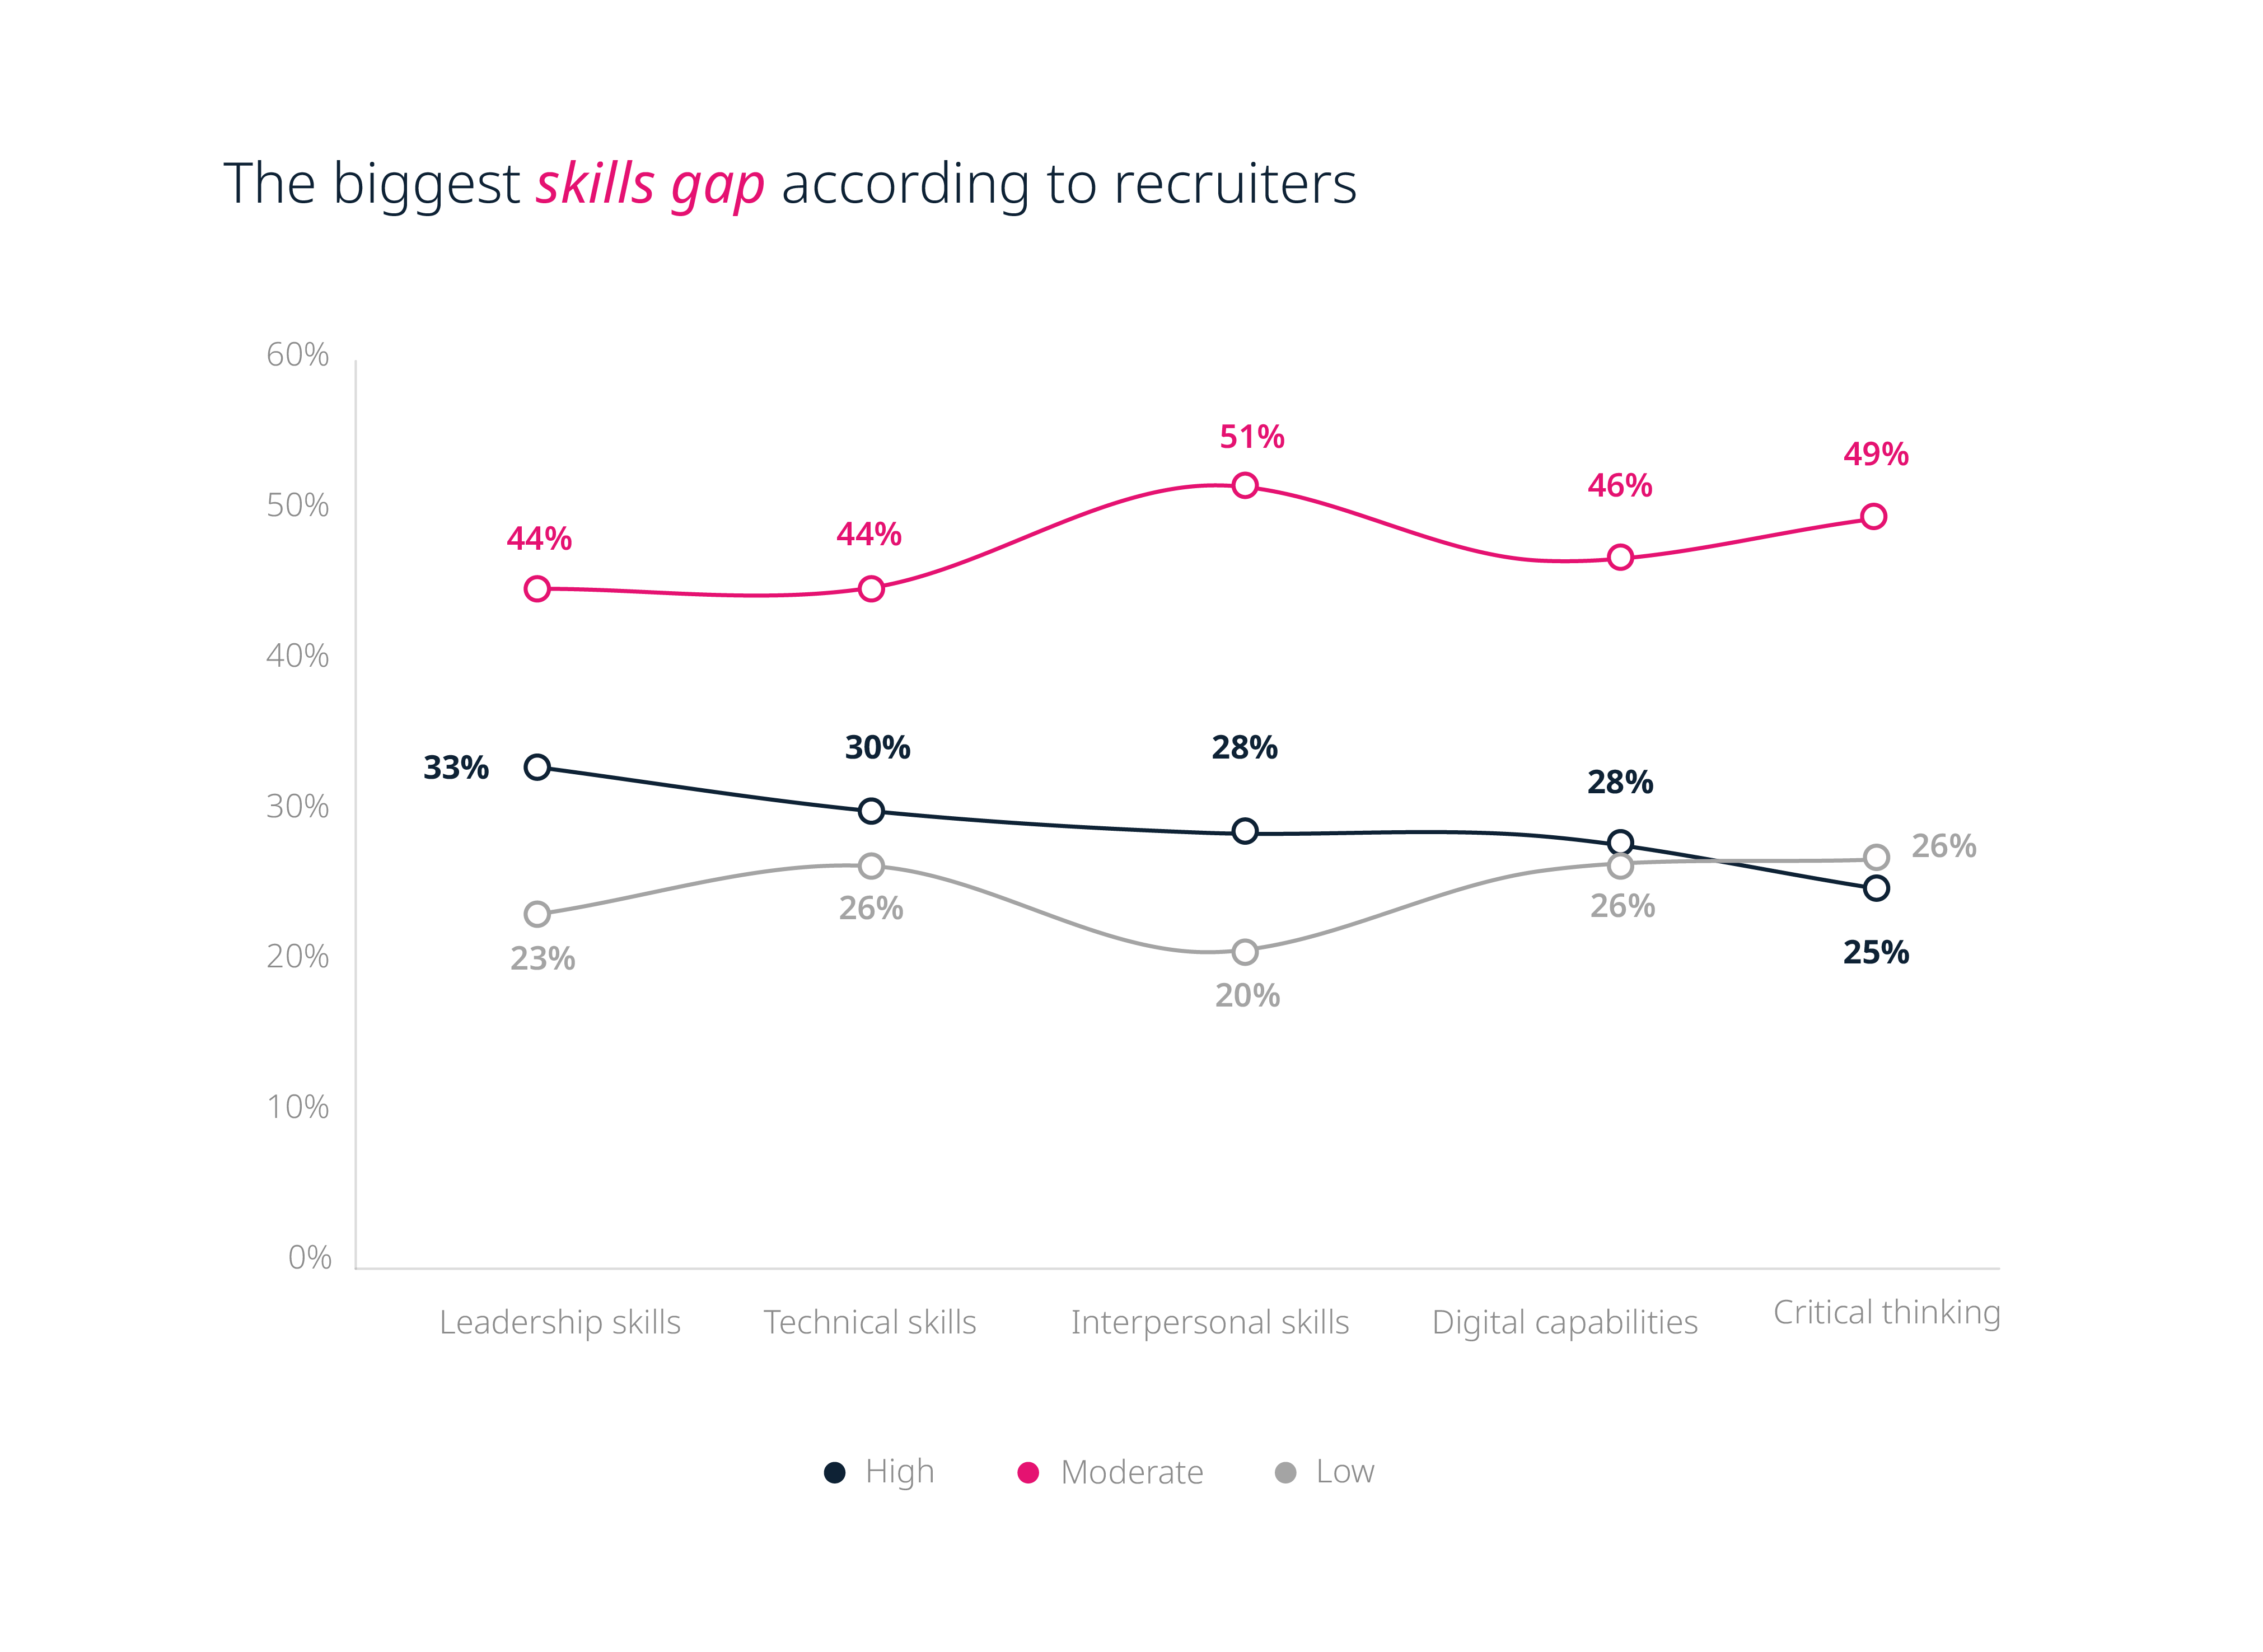 The biggest skills gaps according to recruiters